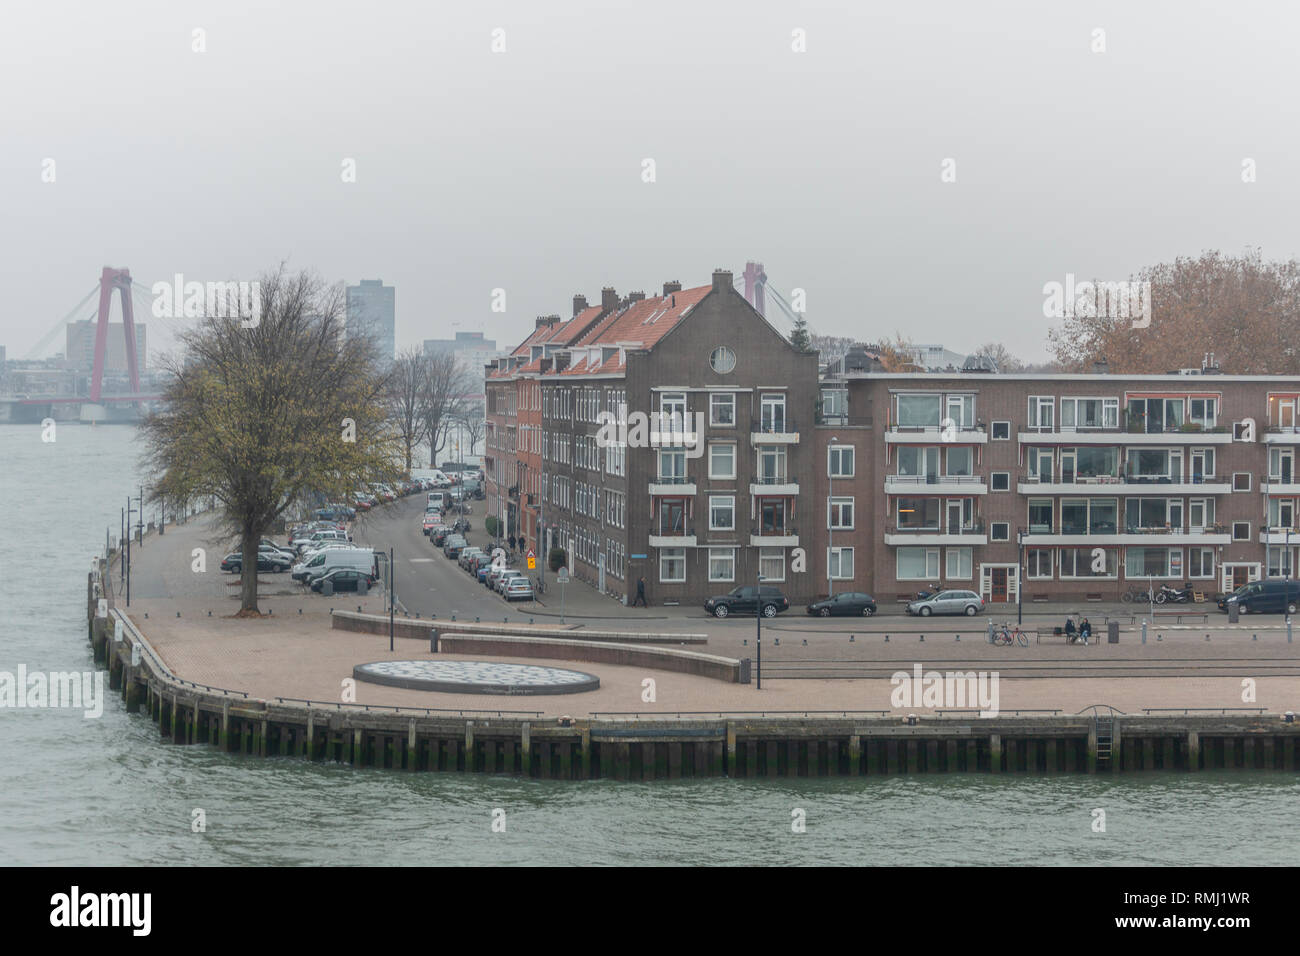 Neighbourhood quay in the city centre of Rotterdam on a hazy overcast day with in the background a bridge and city constructions - Stock Image